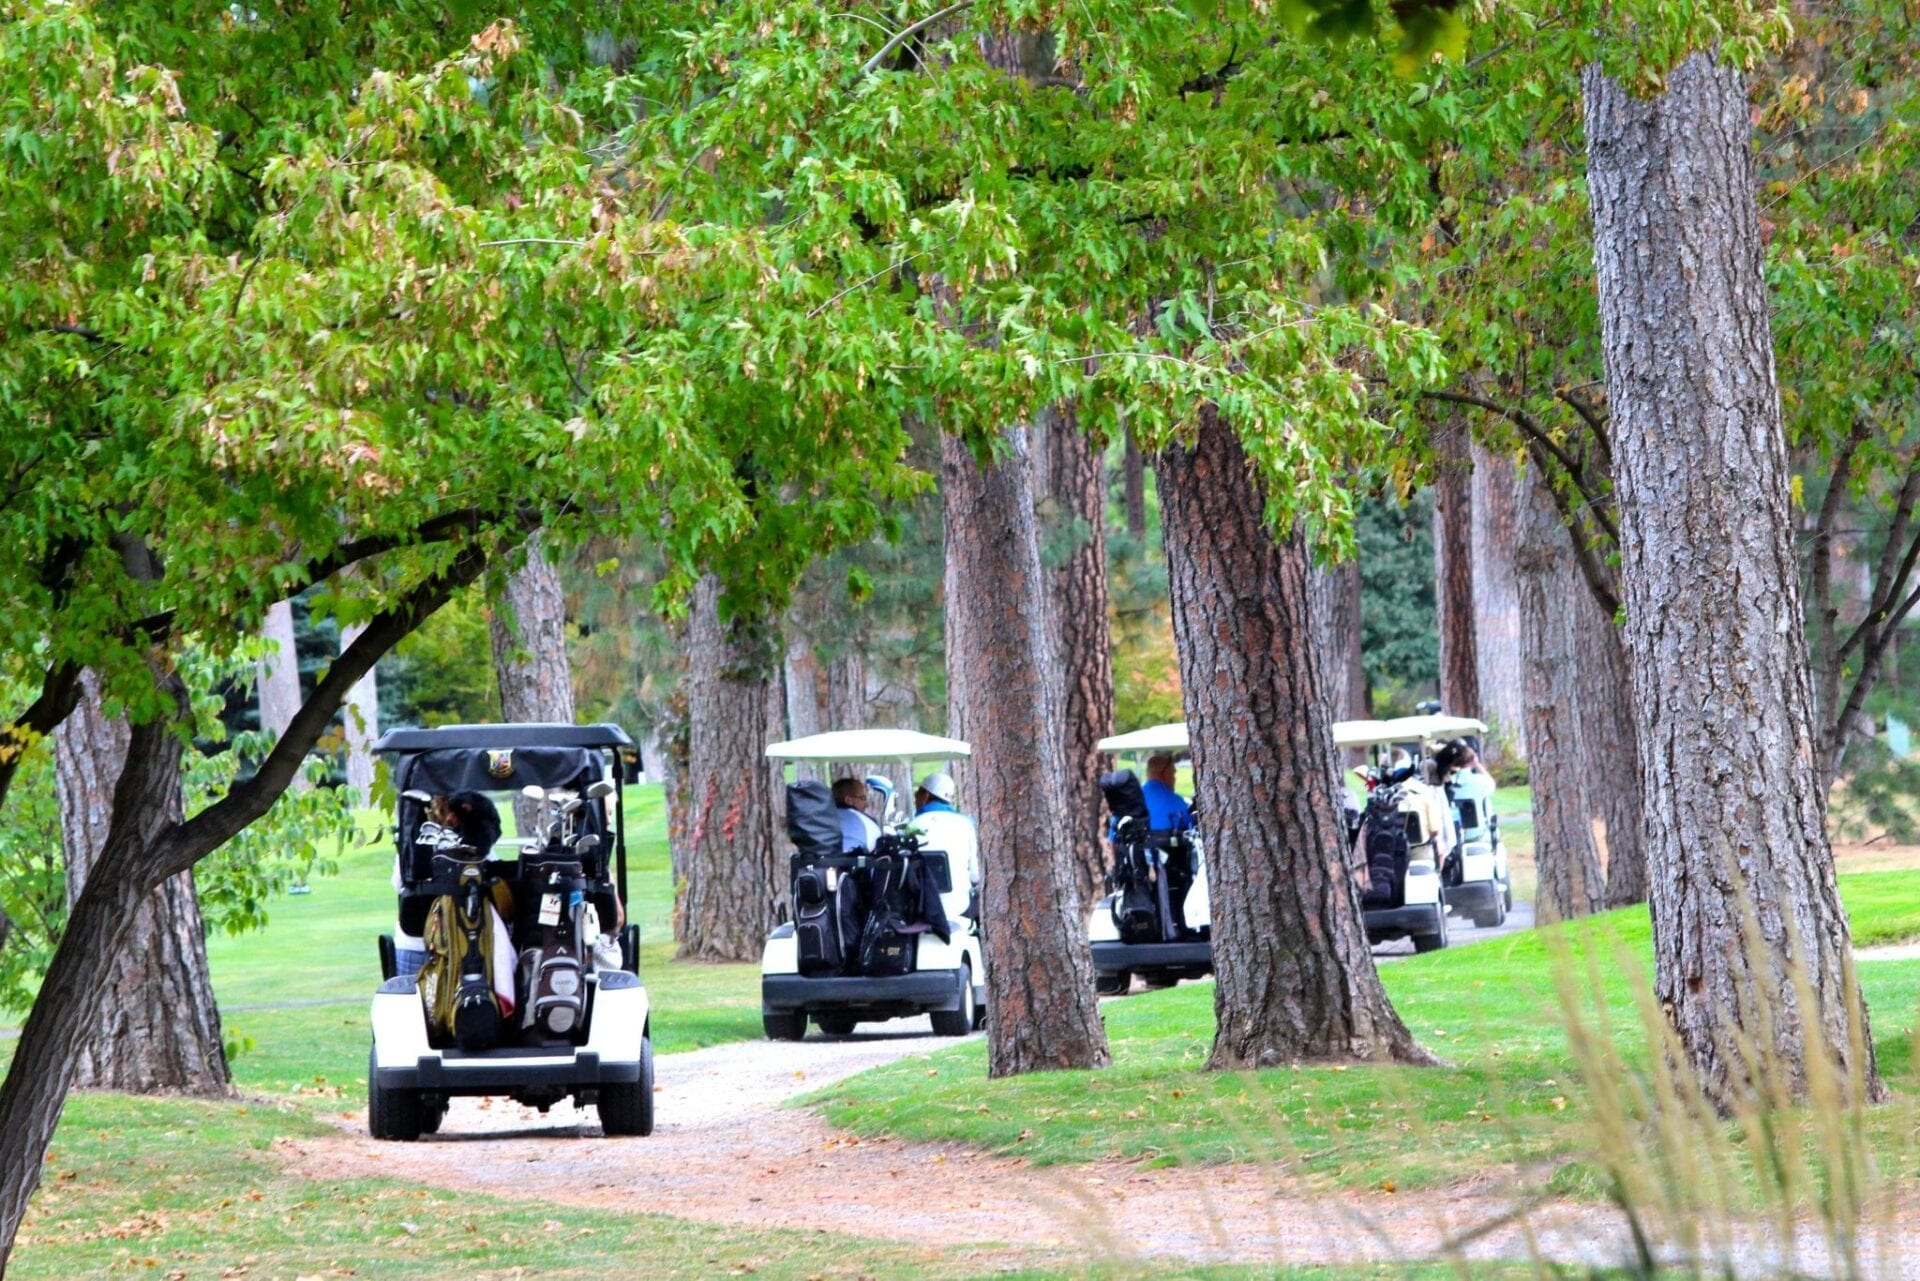 Golf Carts on course